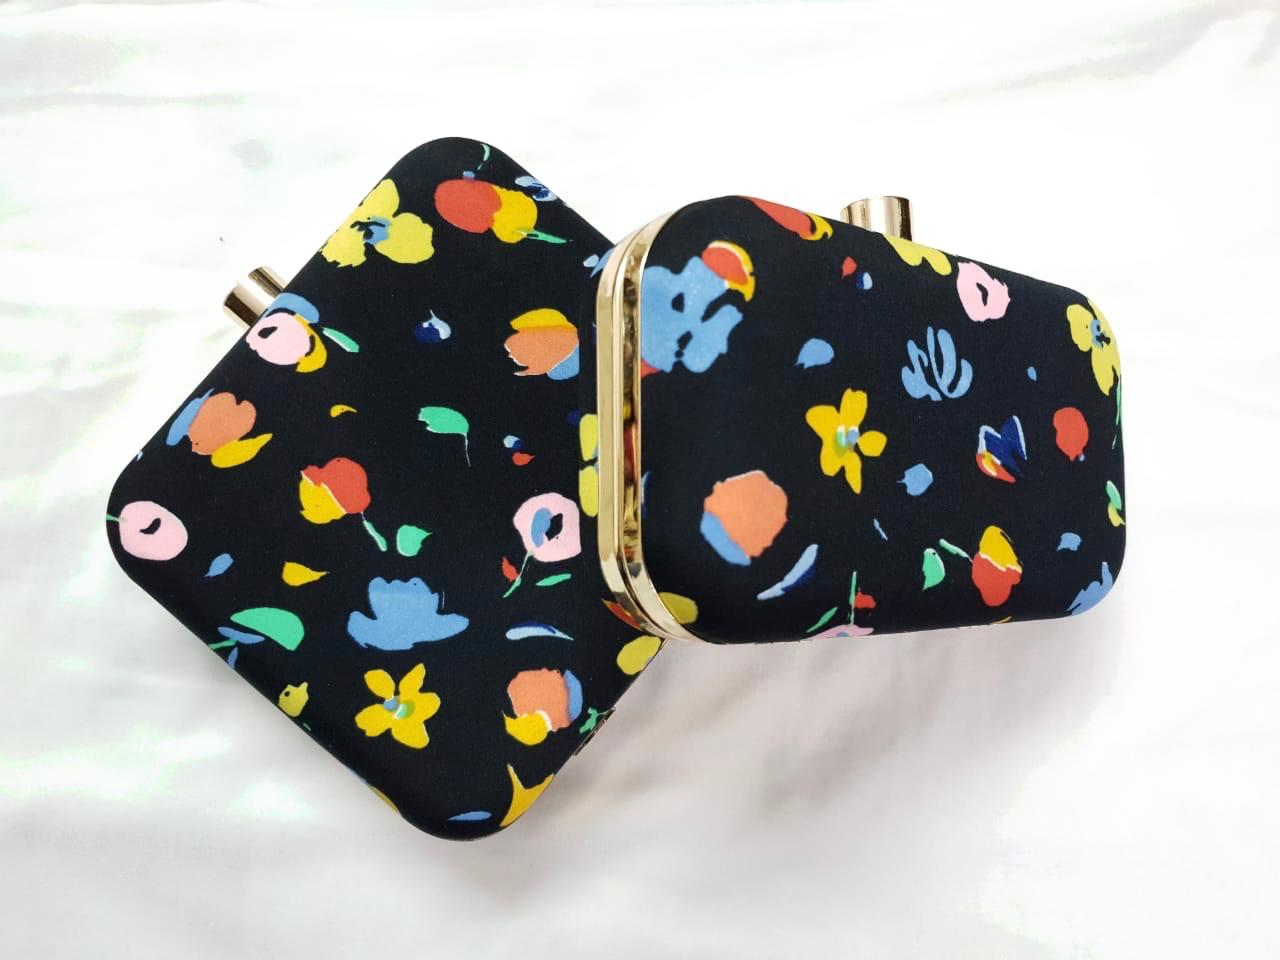 Spring Black Floral Clutch Bag/ Evening Bag.